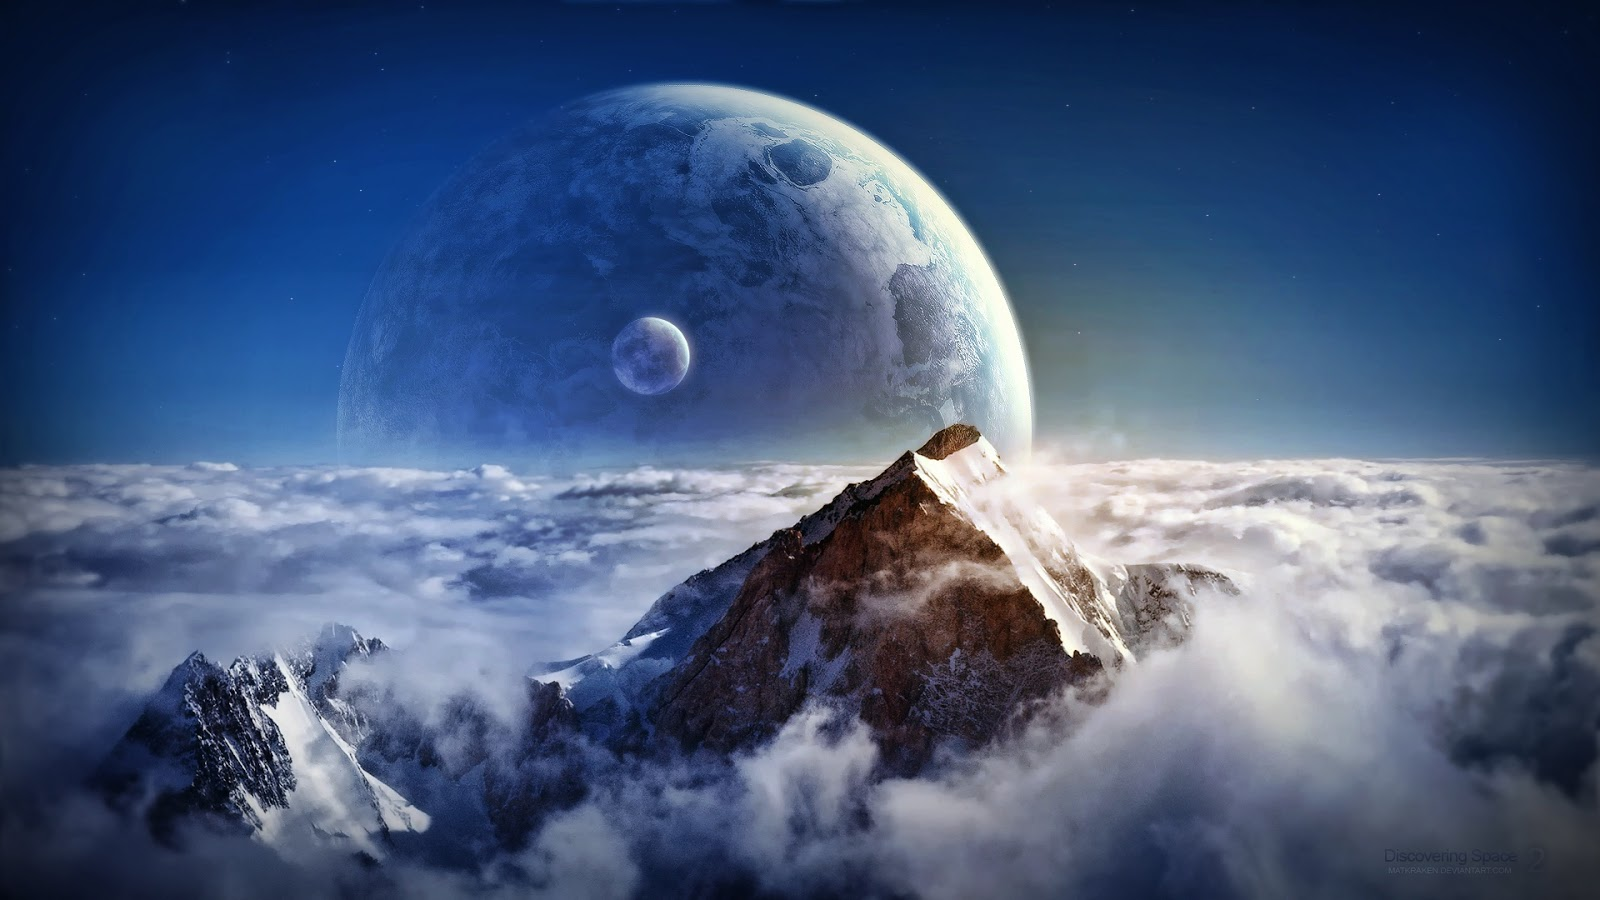 Discover Space Wallpaper 1080p